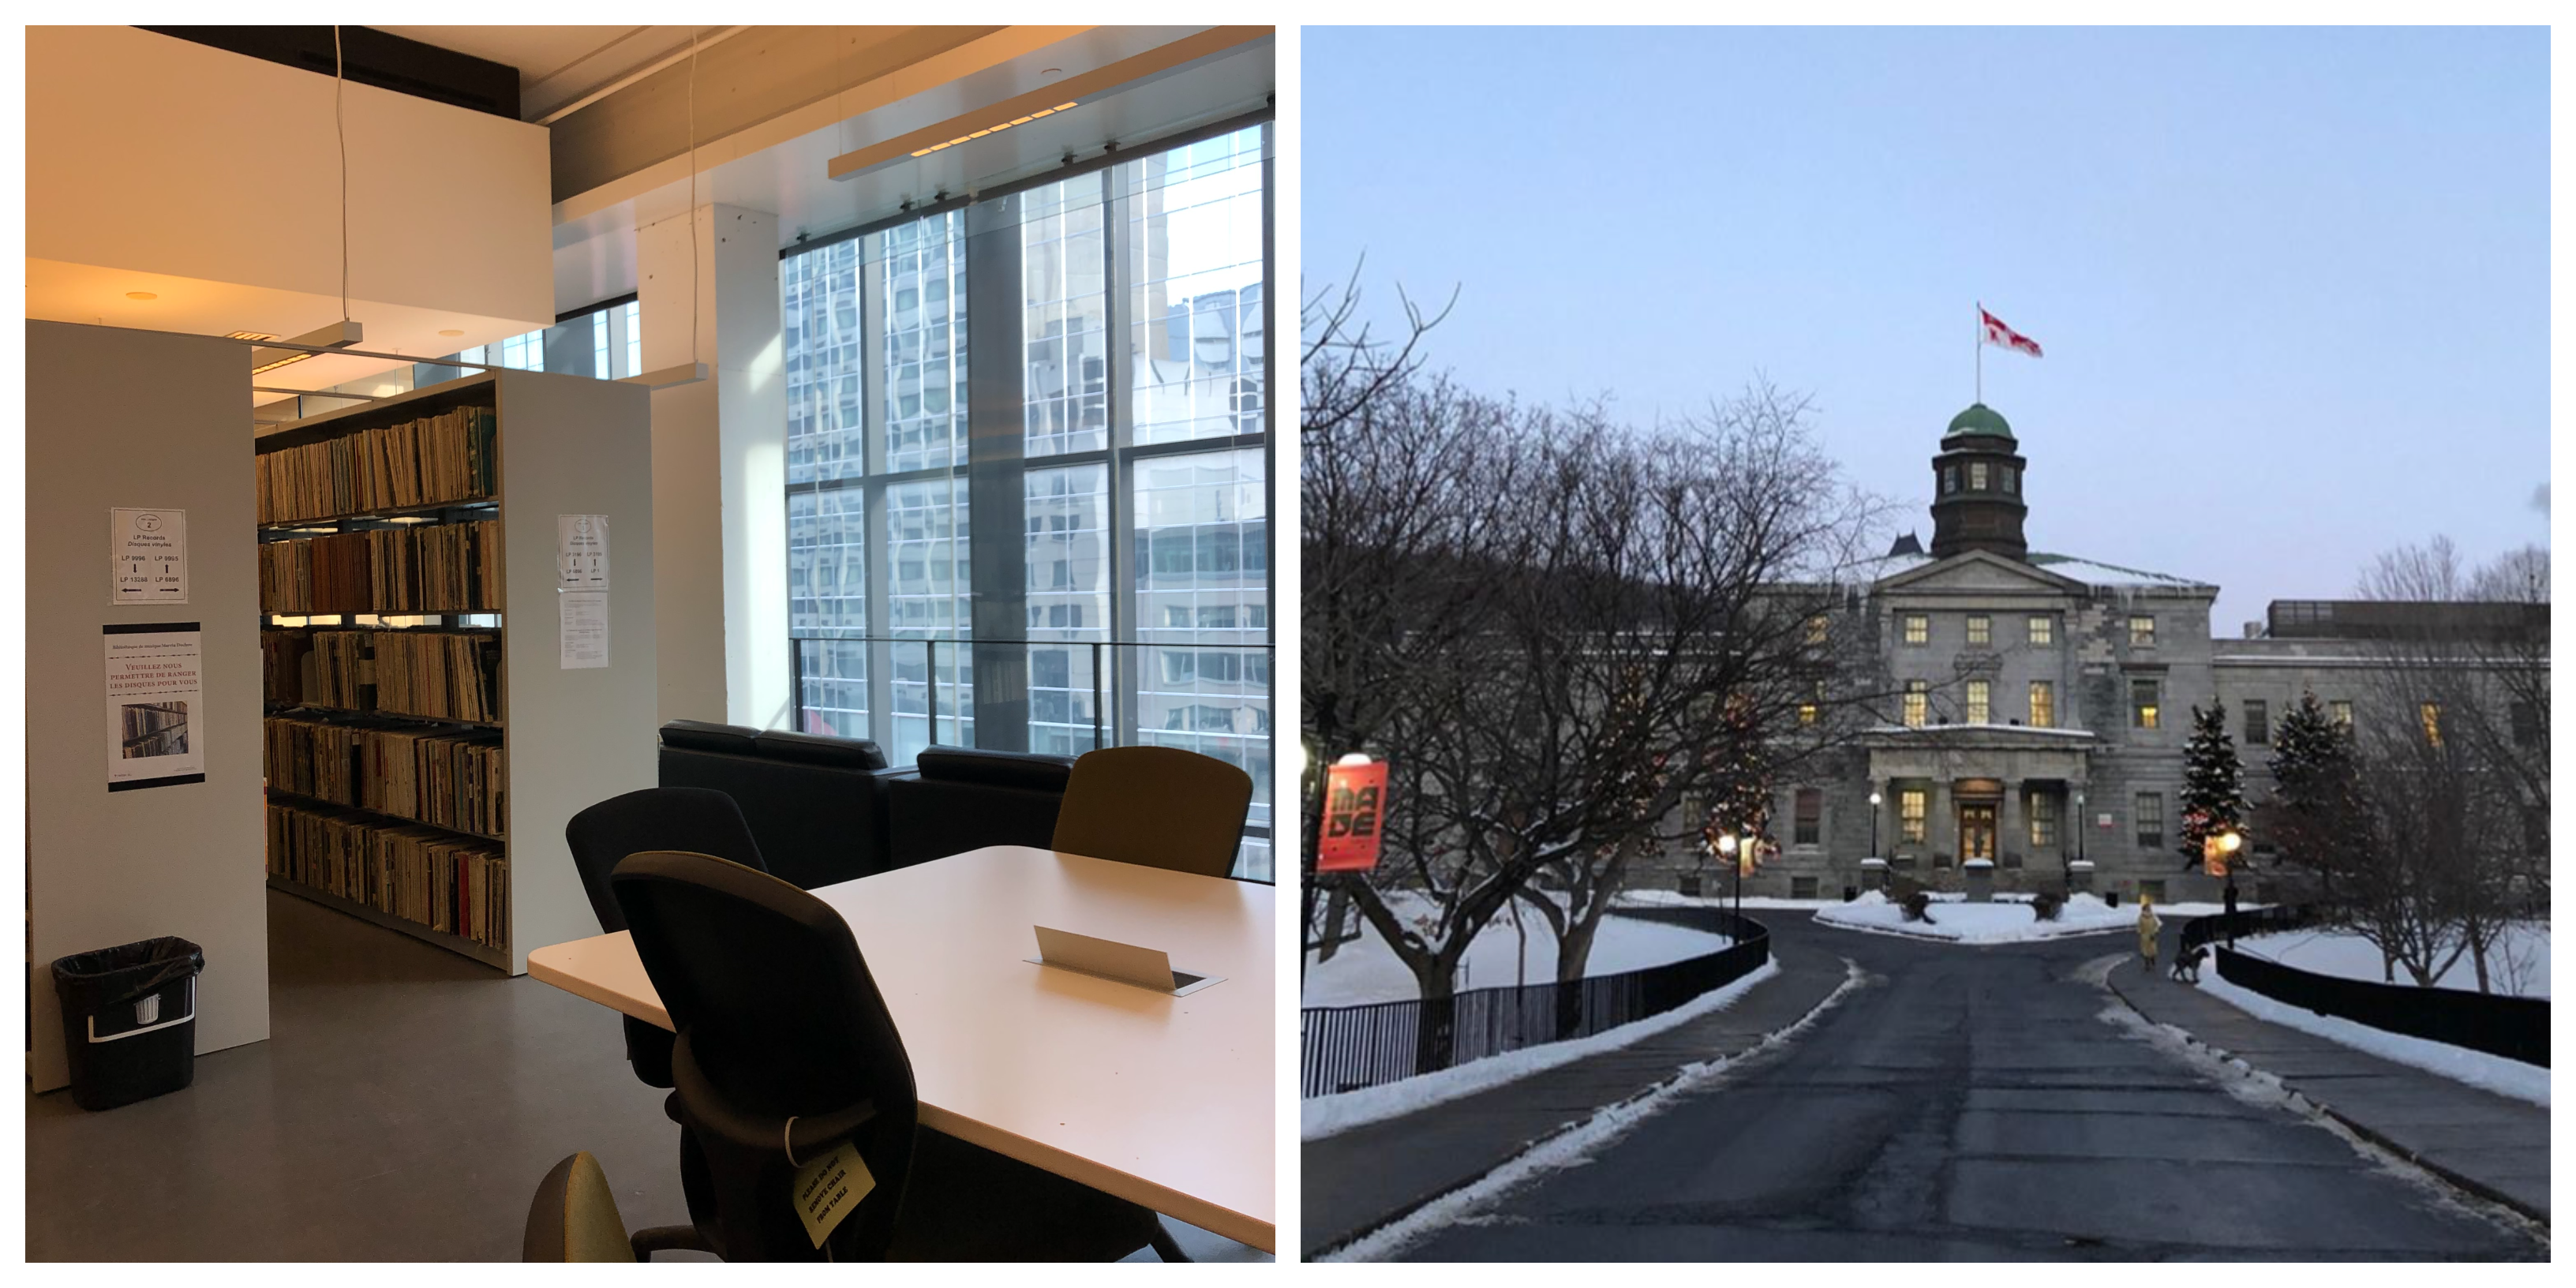 Two photos side-by-side. On the left, a university library study area. On the right, a photo of a McGill campus building in winter.